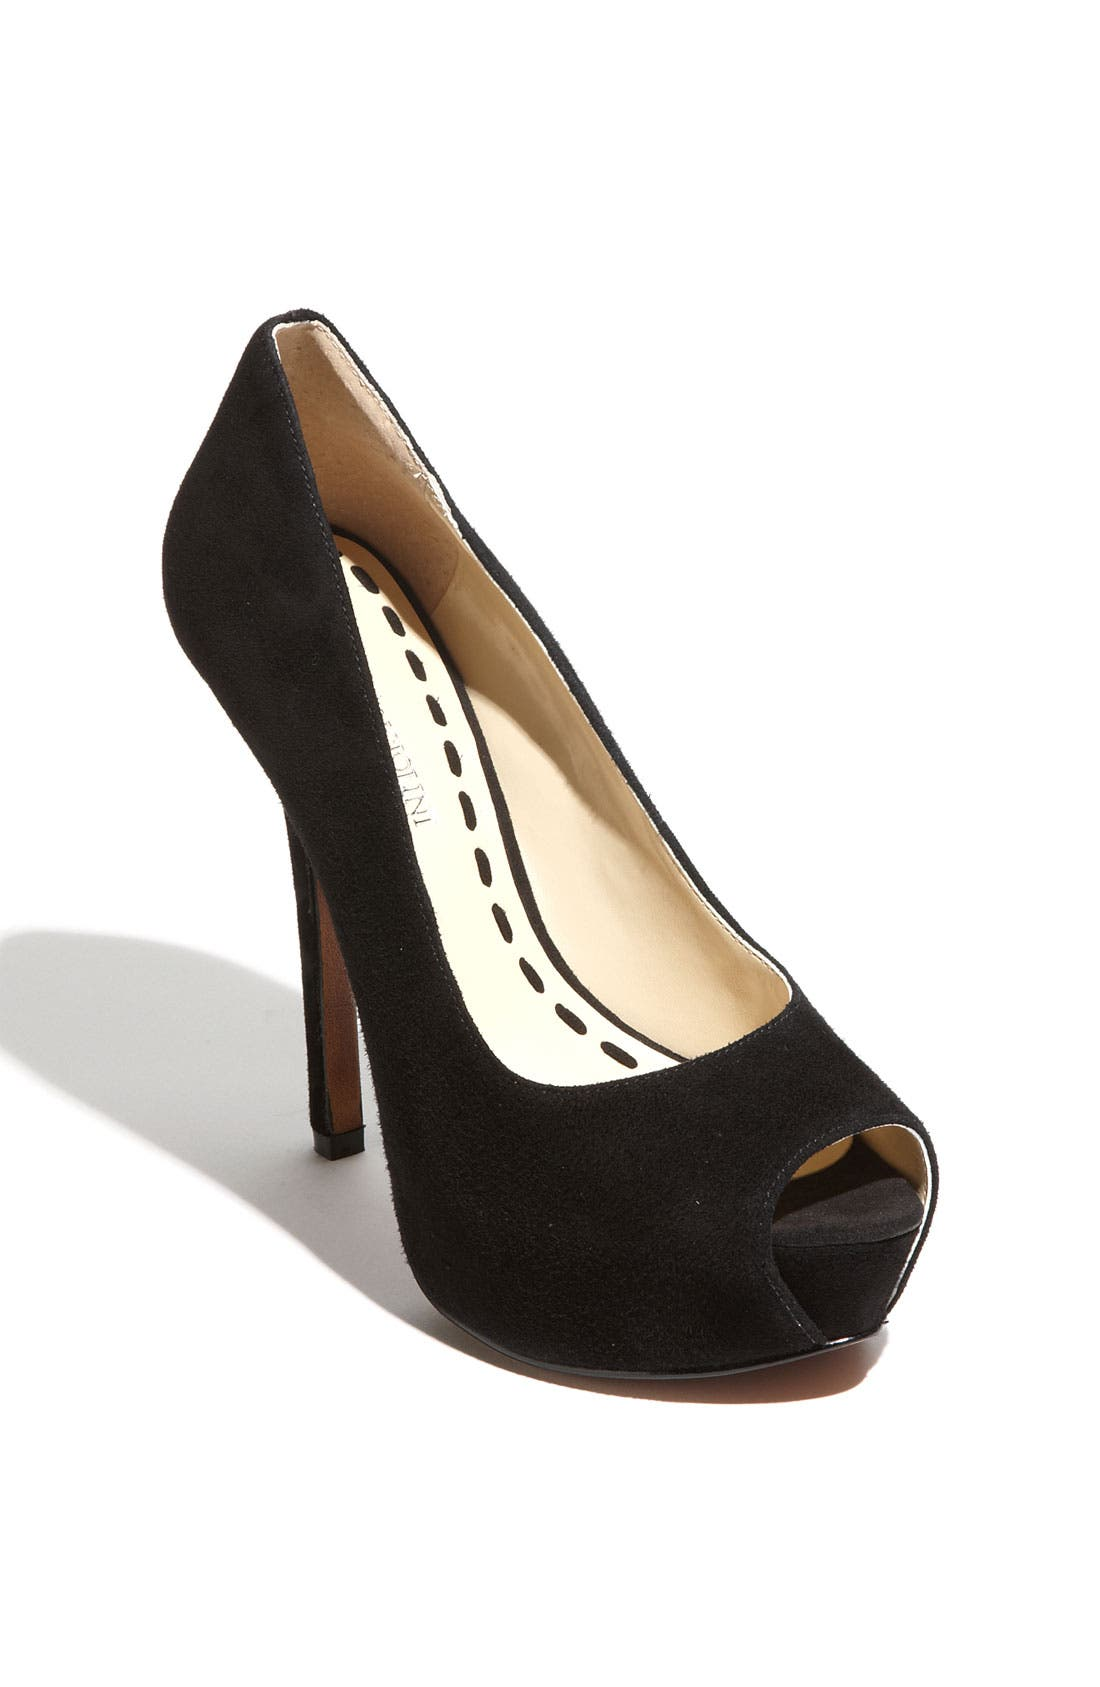 Alternate Image 1 Selected - Enzo Angiolini 'Tanen' Pump (Exclusive Color)